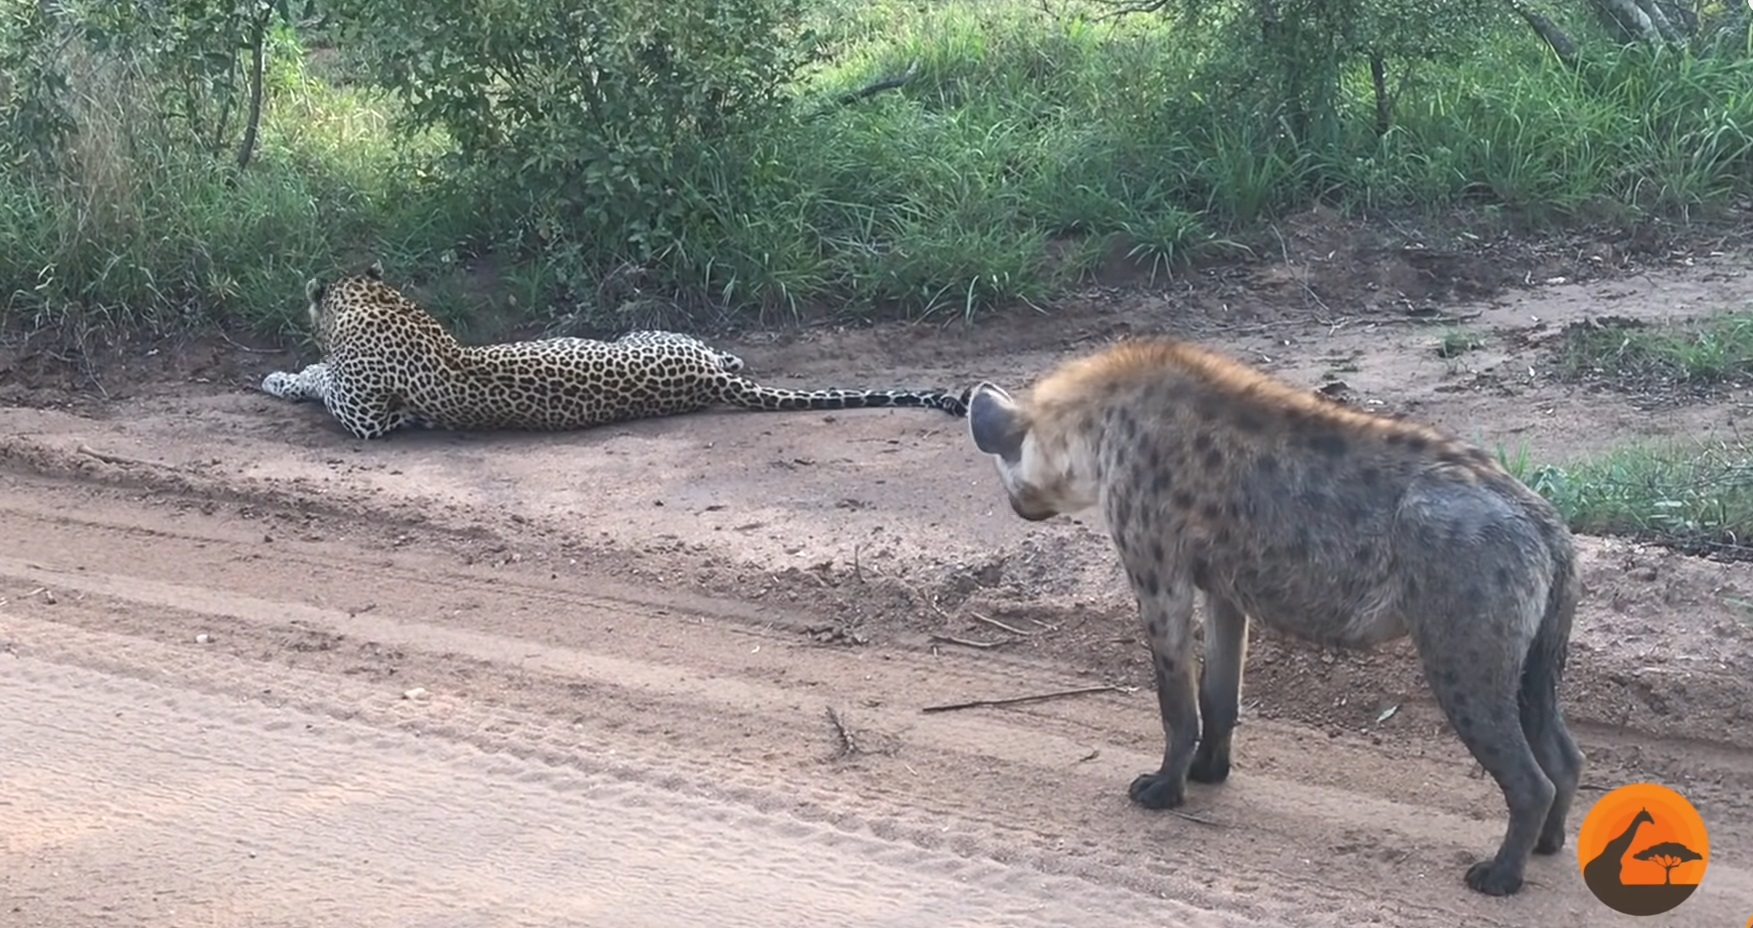 Hyena Gives Leopard A Scare